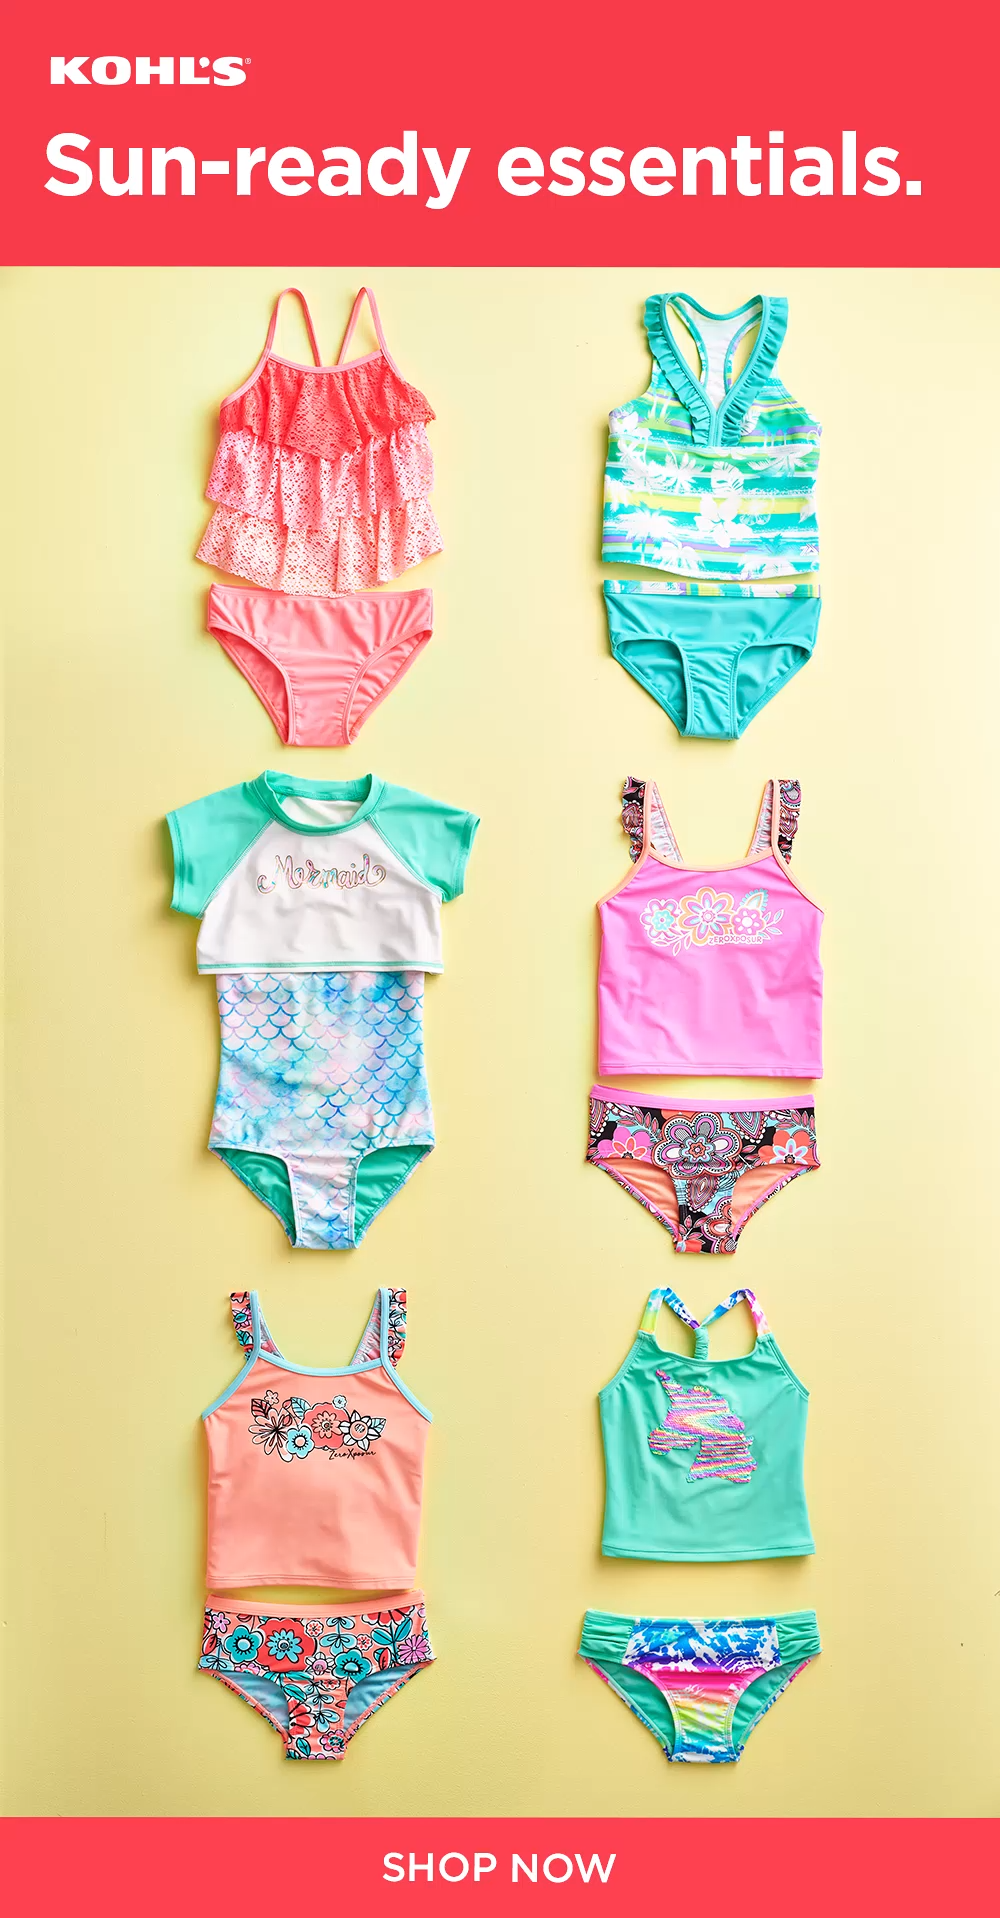 bdc00c32be60c Get your kids ready for sunny days ahead with swimsuits, sandals and  outdoor toys at